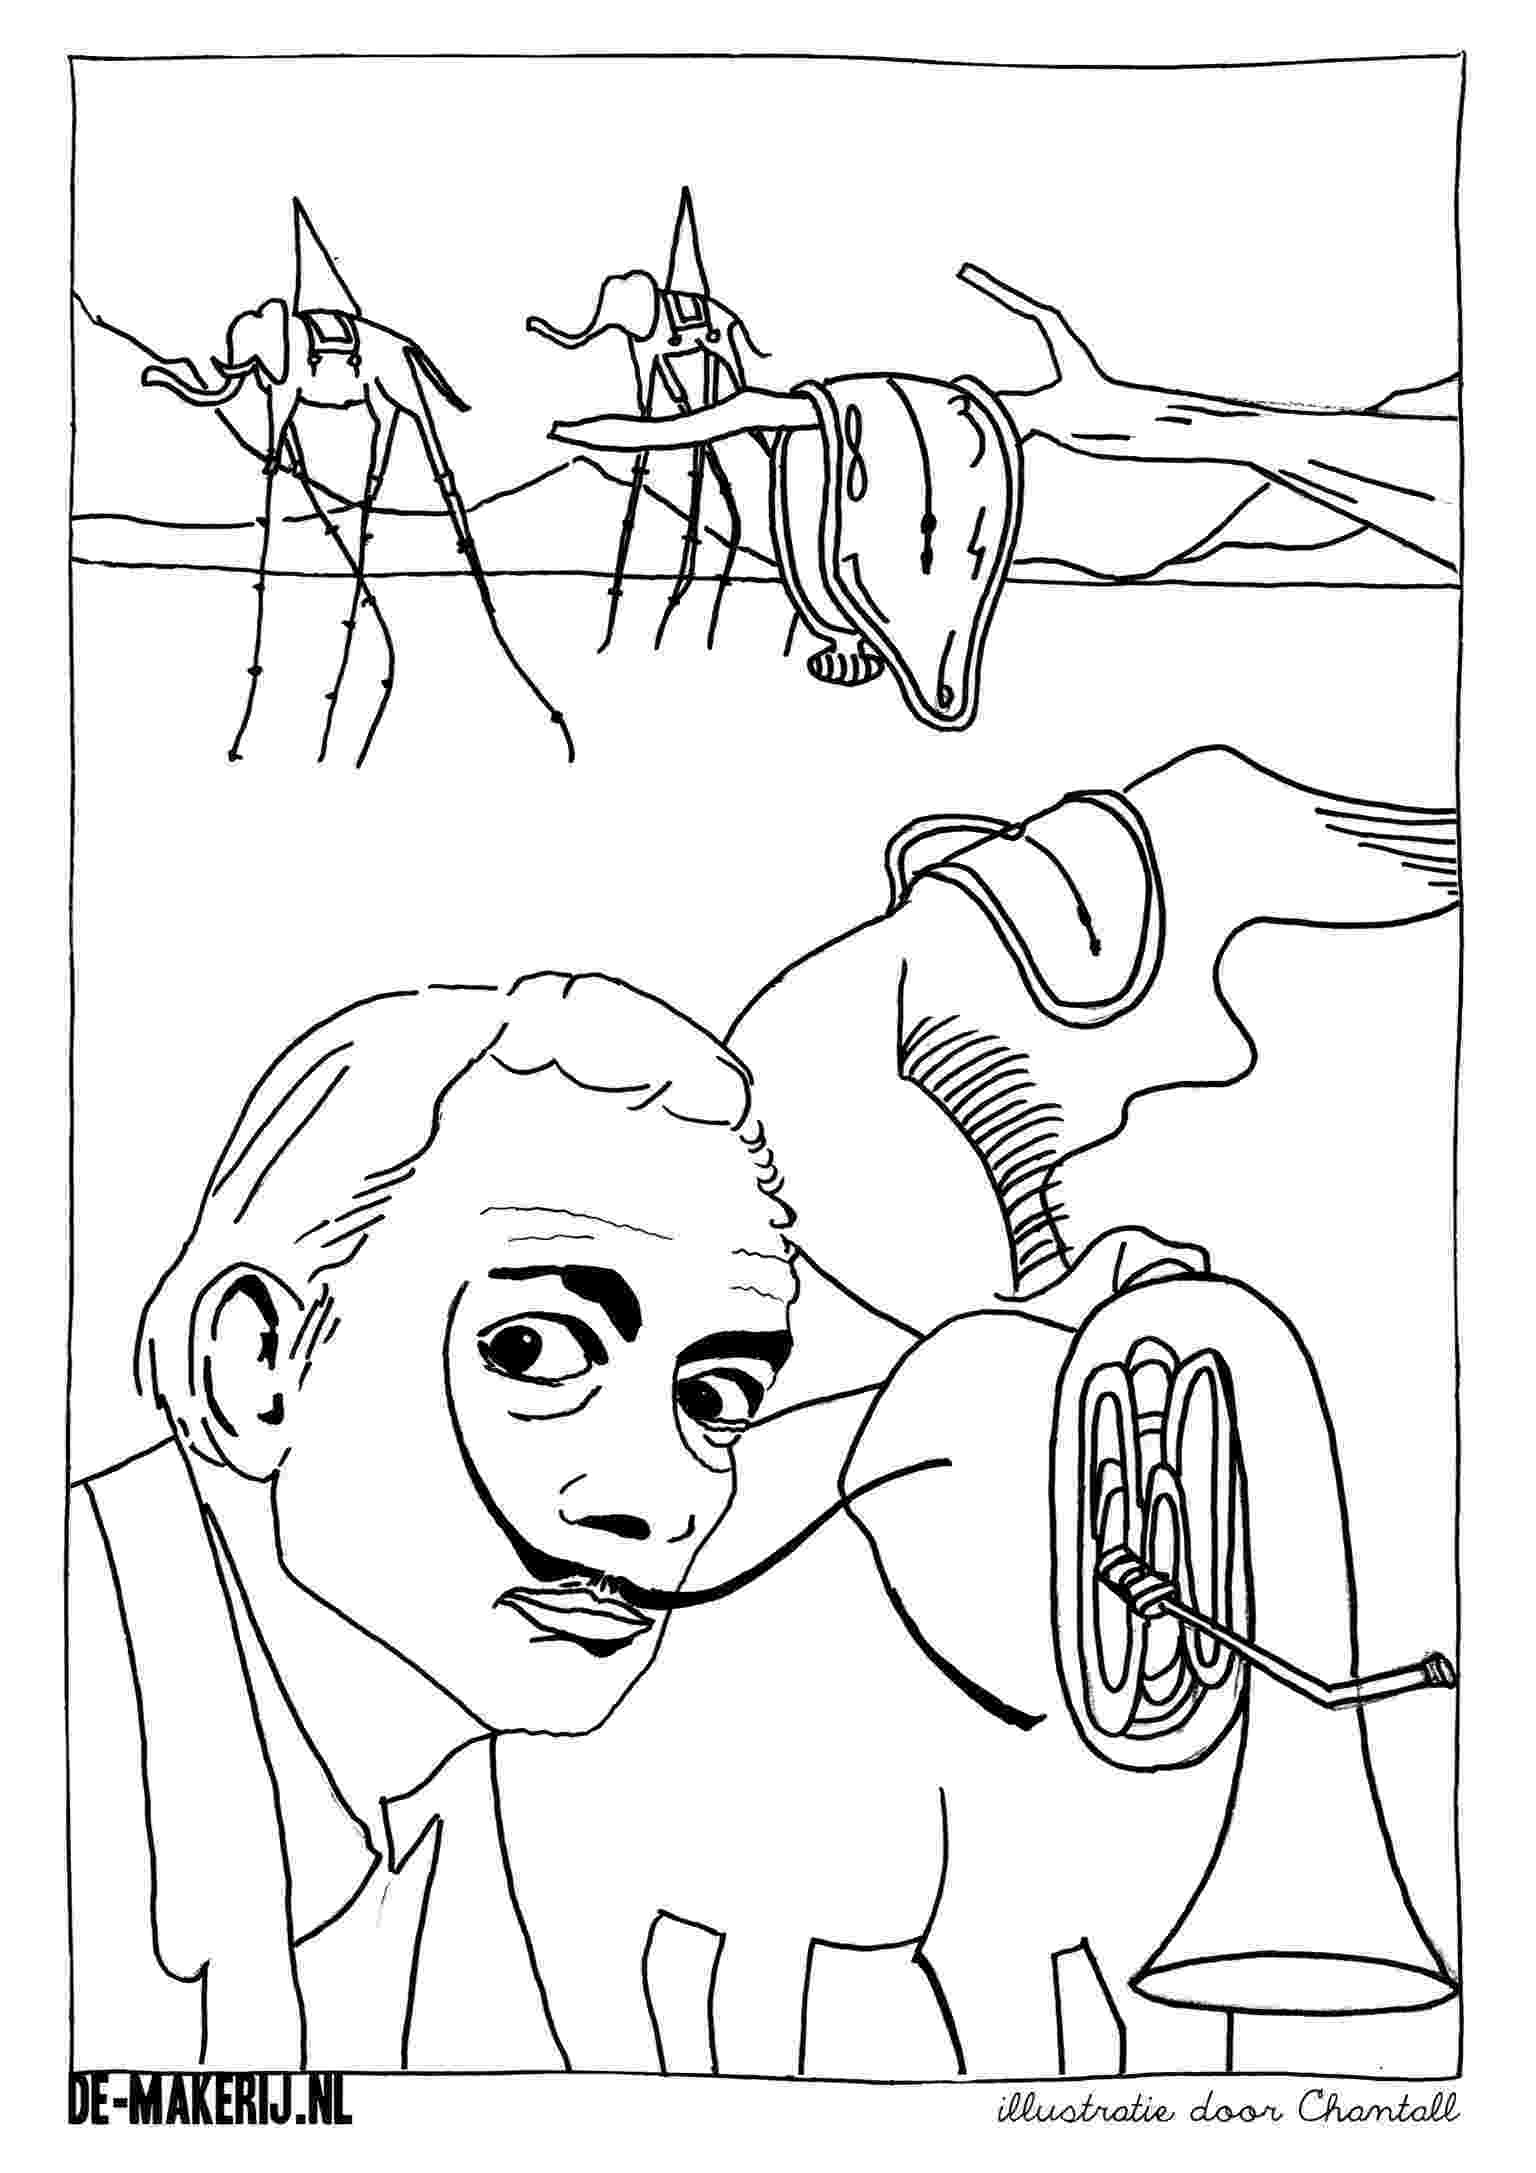 salvador dali coloring pages salvador dali and salvador dali on pinterest dali salvador coloring pages